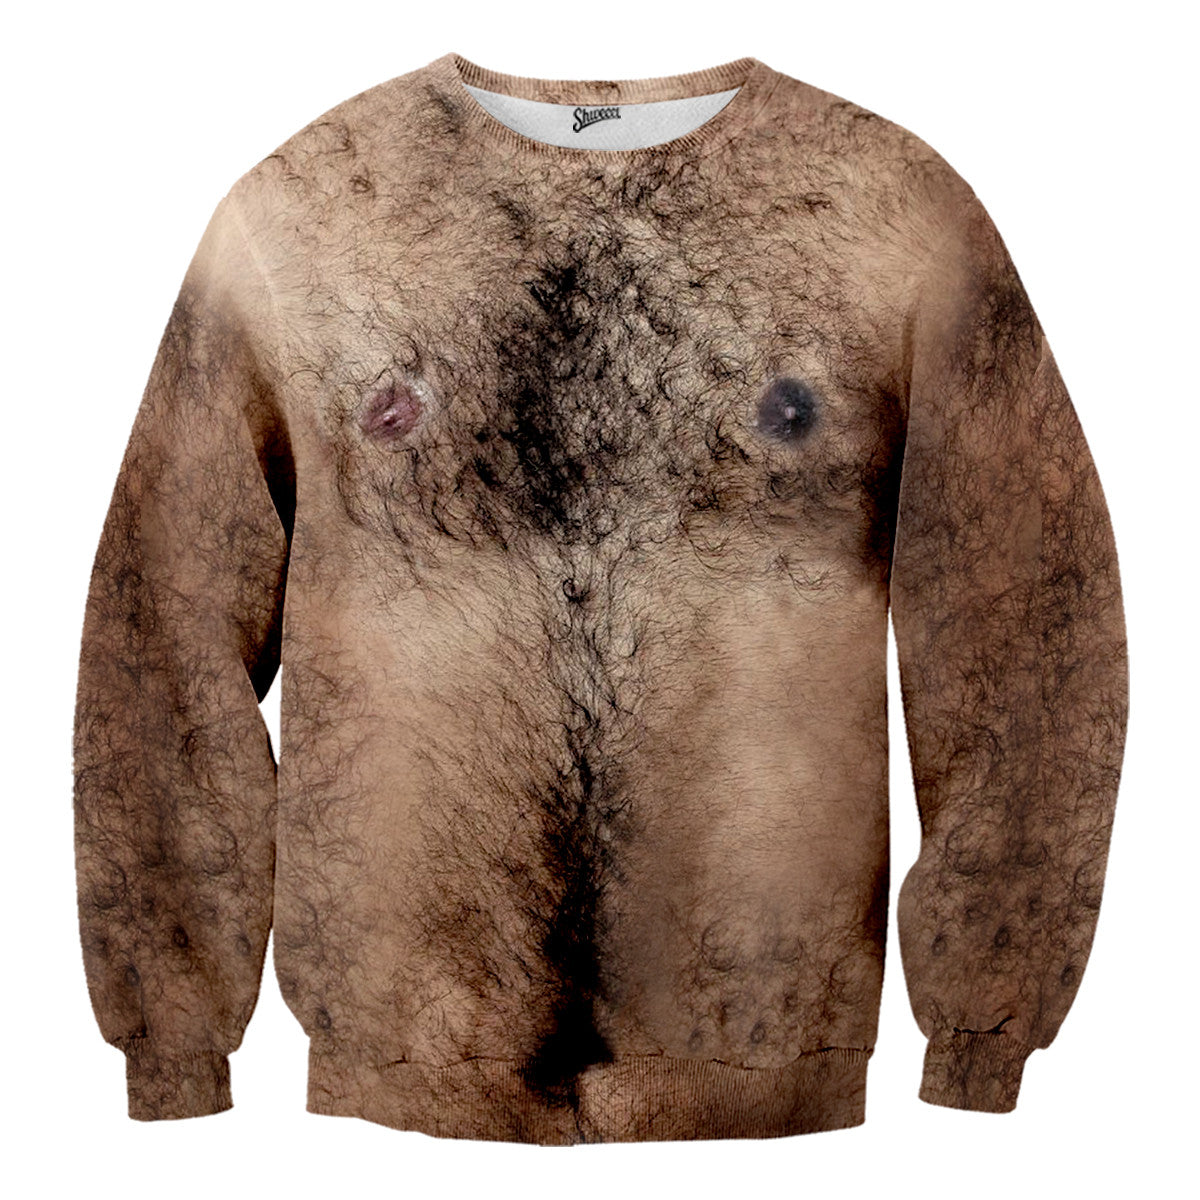 Hairy Chest Sweater - Shweeet